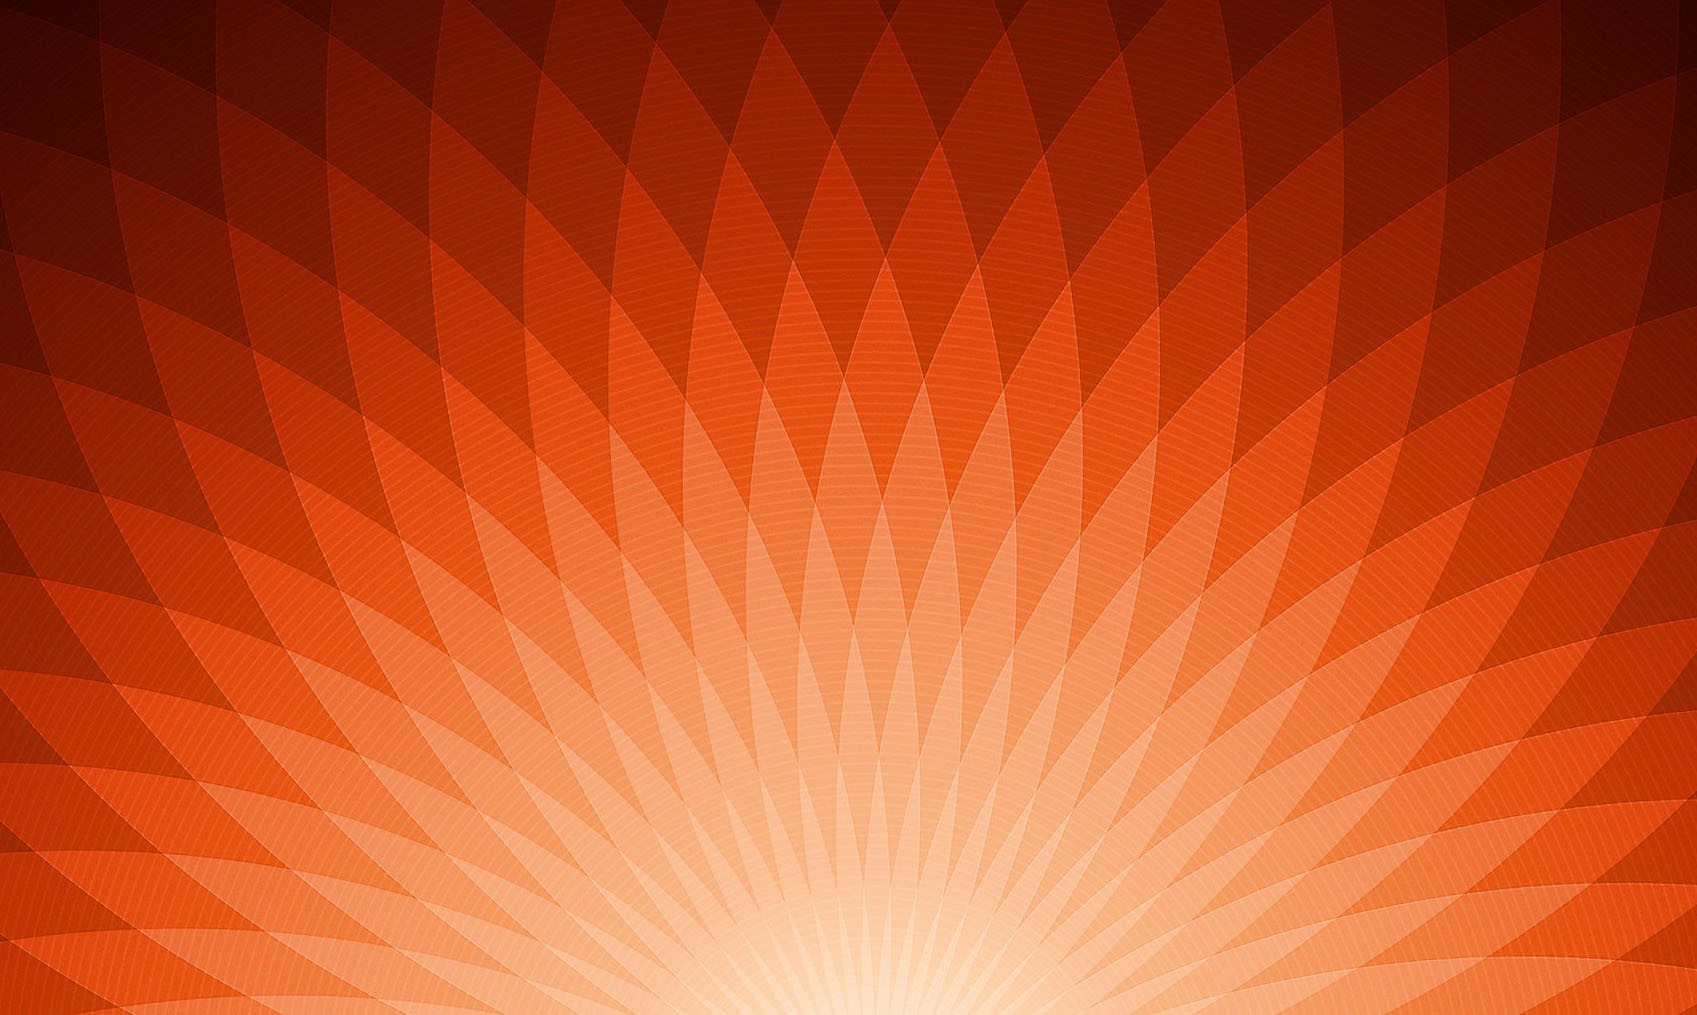 Cool pattern wallpapers 42 wallpapers adorable wallpapers for Cool pattern wallpaper